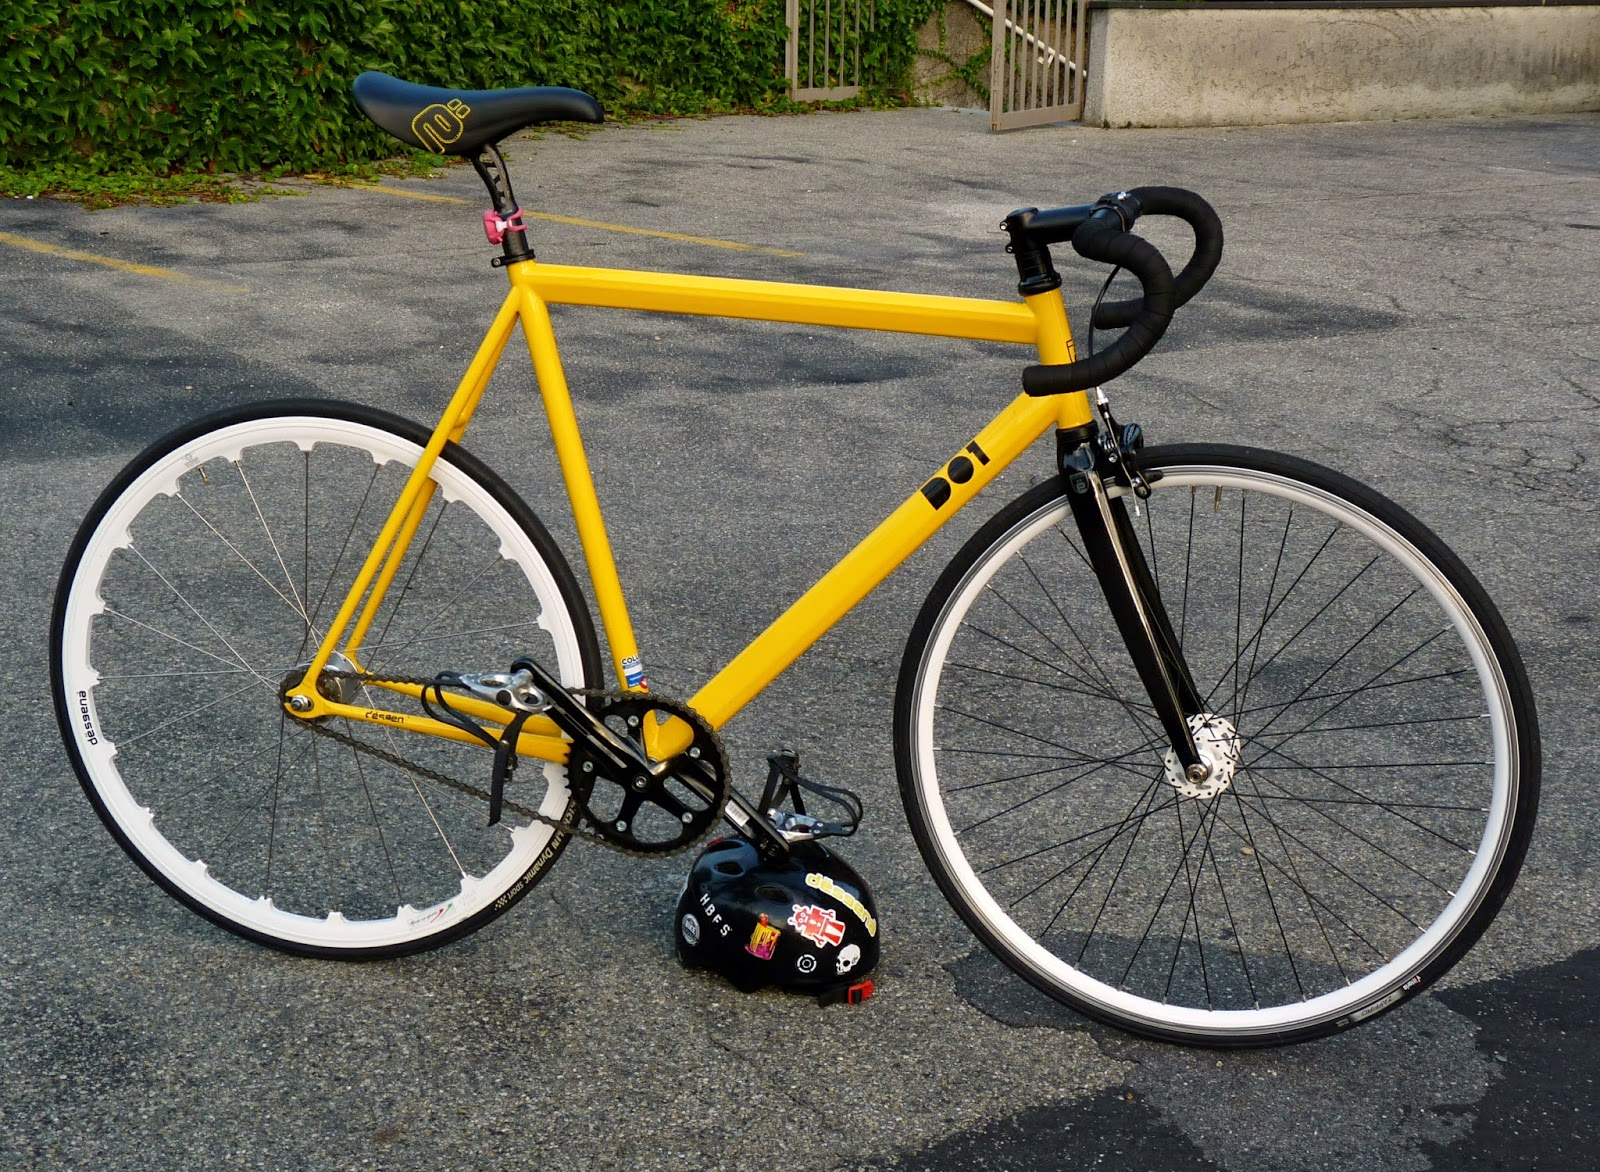 Desgenà D01 fixed gear bike of Riccardo Pozzato from Italy